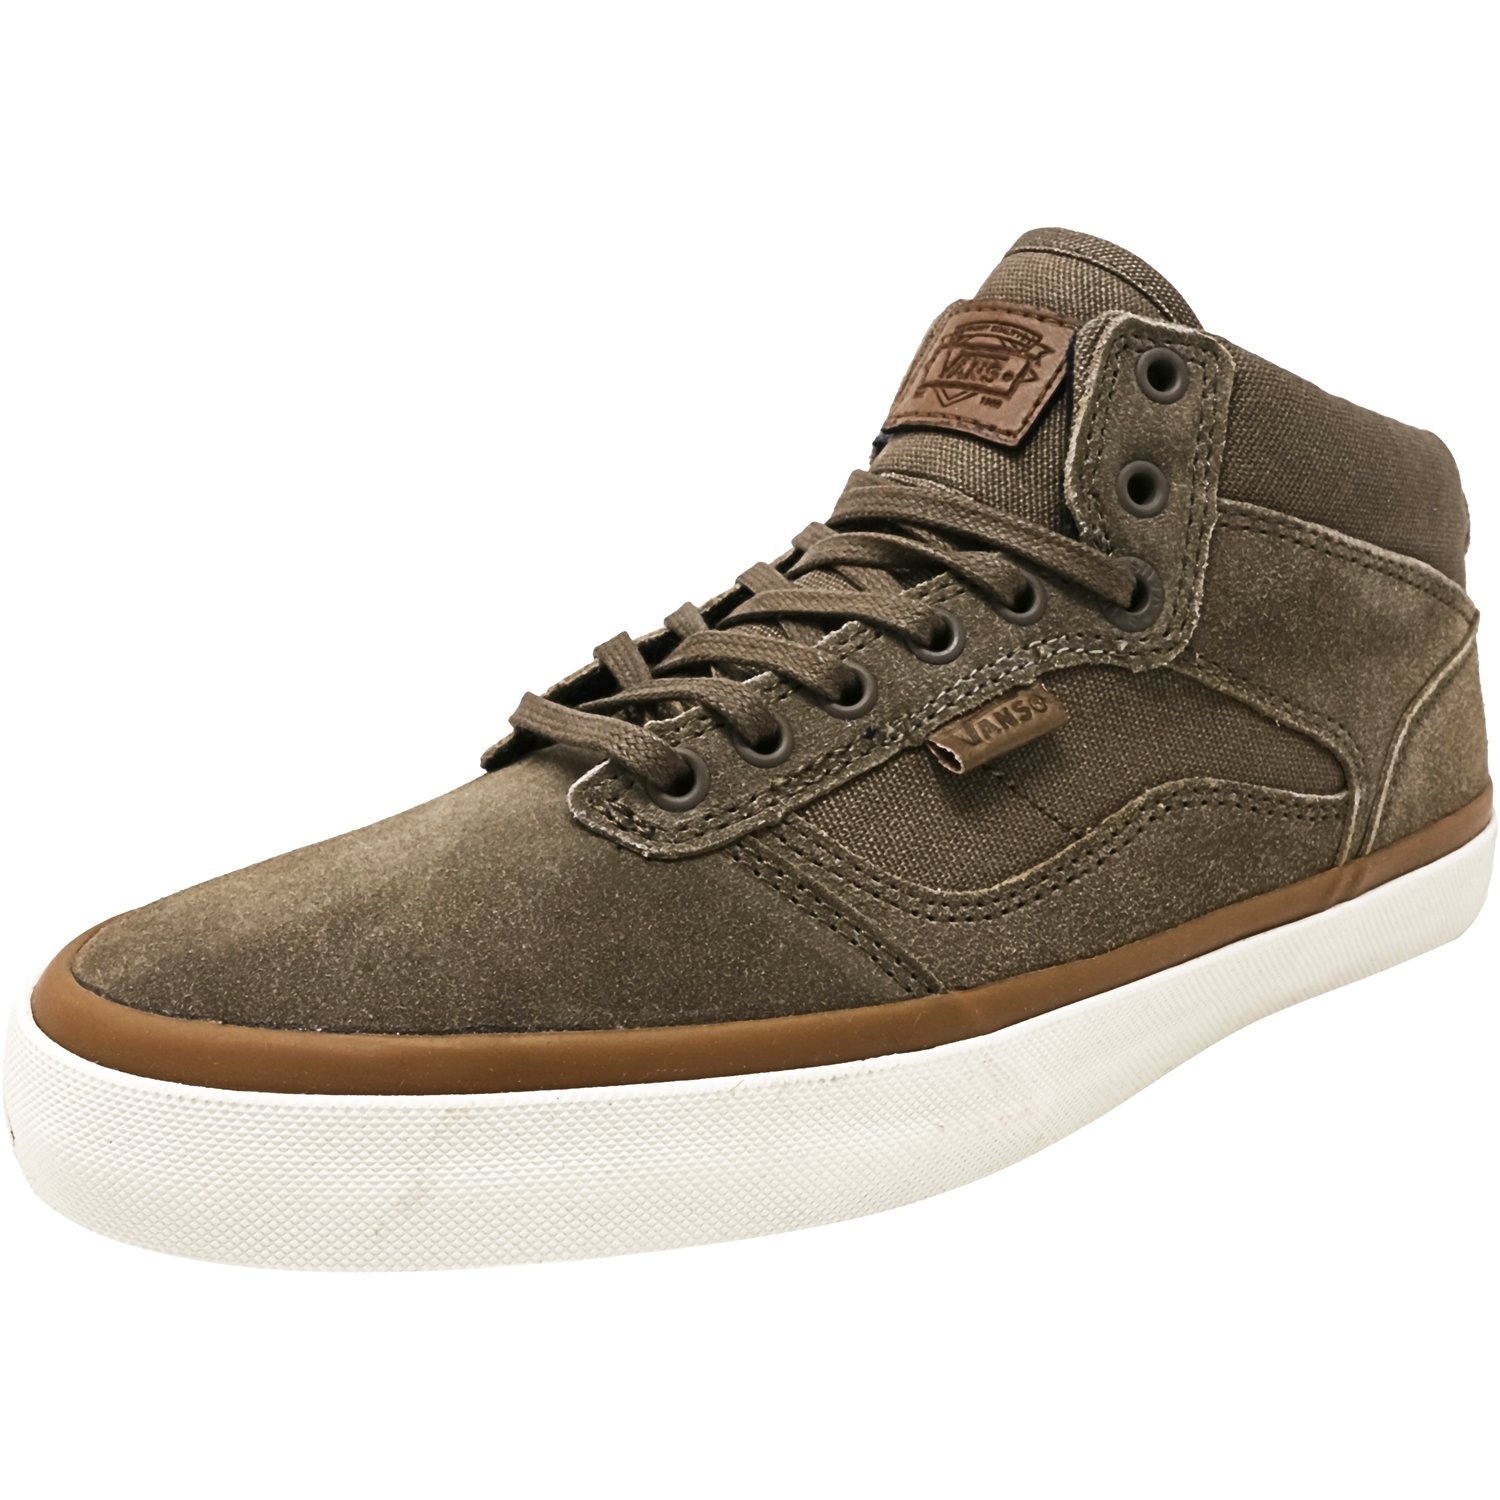 Vans Bedford Canvas And Suede Walnut / Marsh Ankle-High Fabric Fashion Sneaker - 9.5M 8M